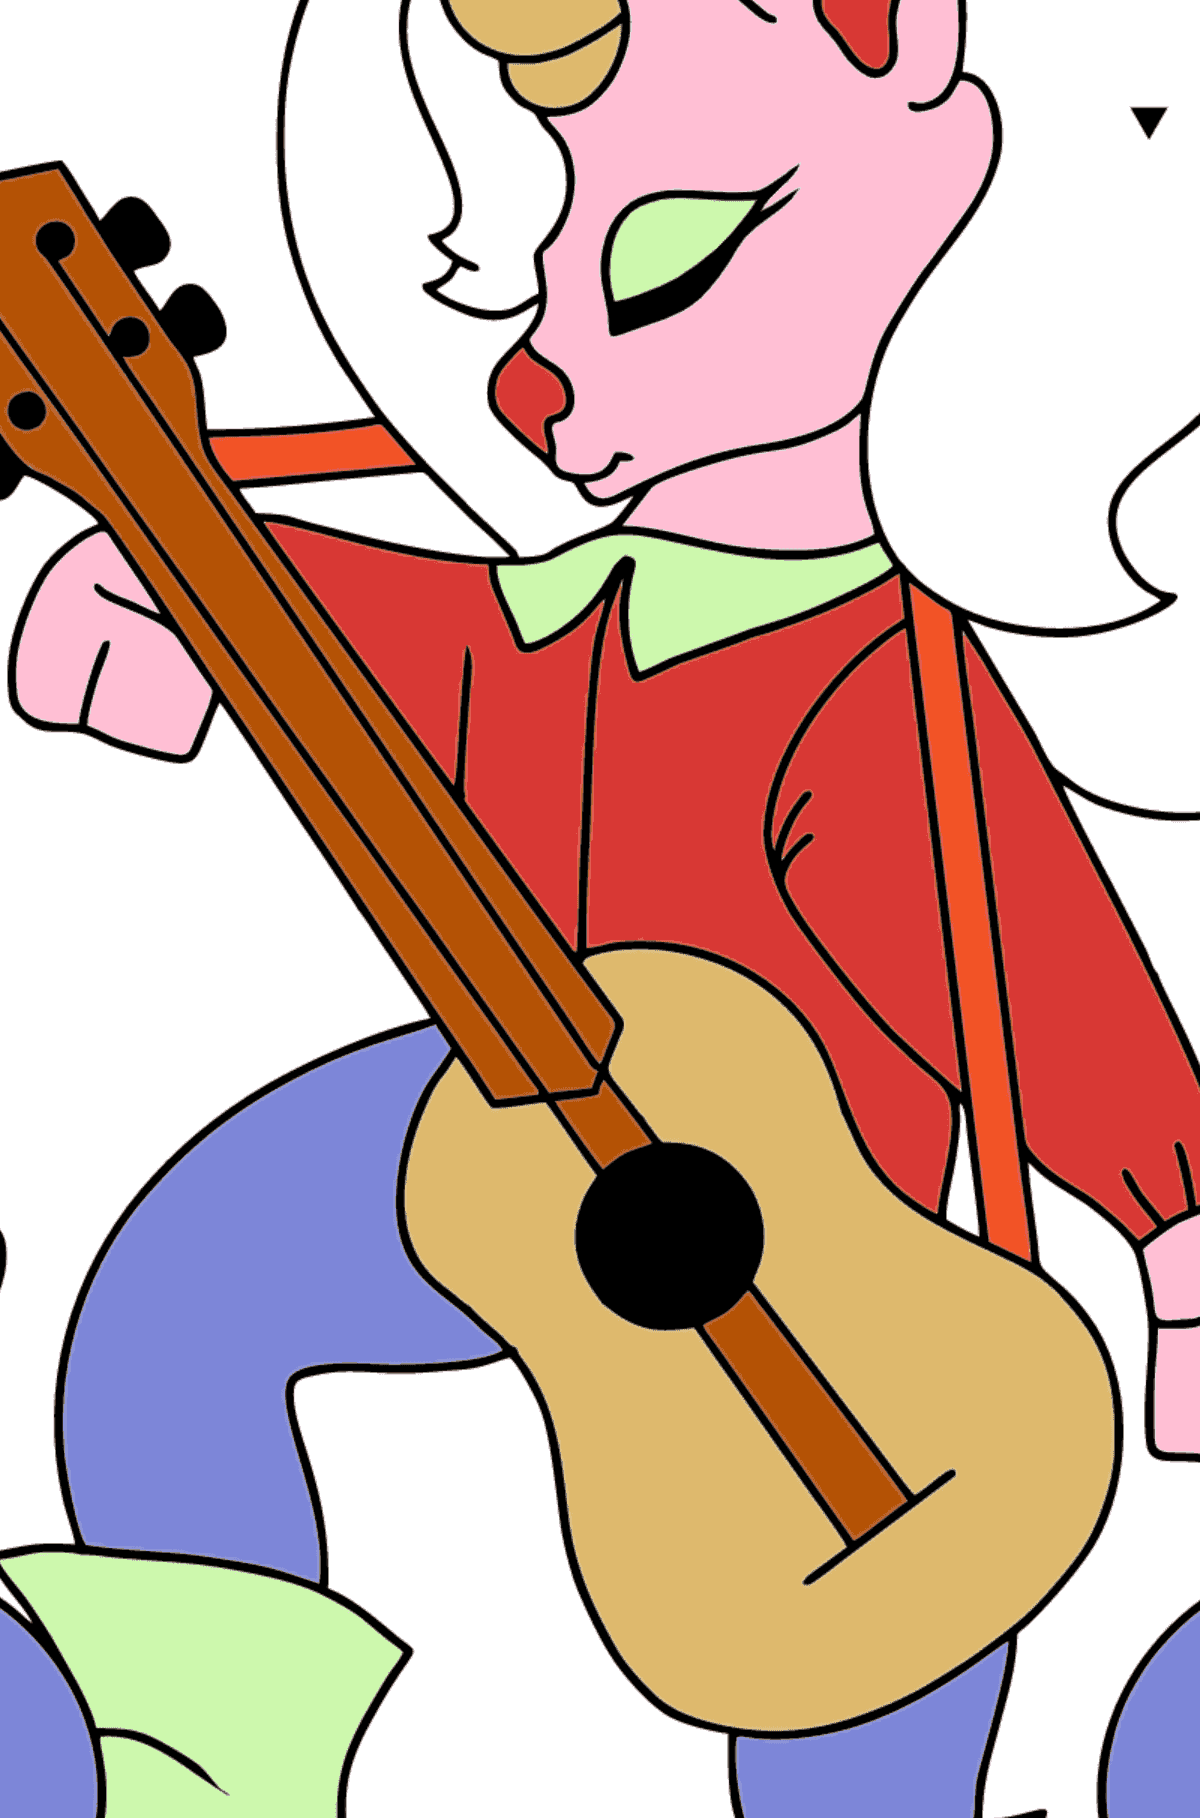 Simple Coloring Page - A Unicorn with a Guitar for Kids  - Color by Special Symbols